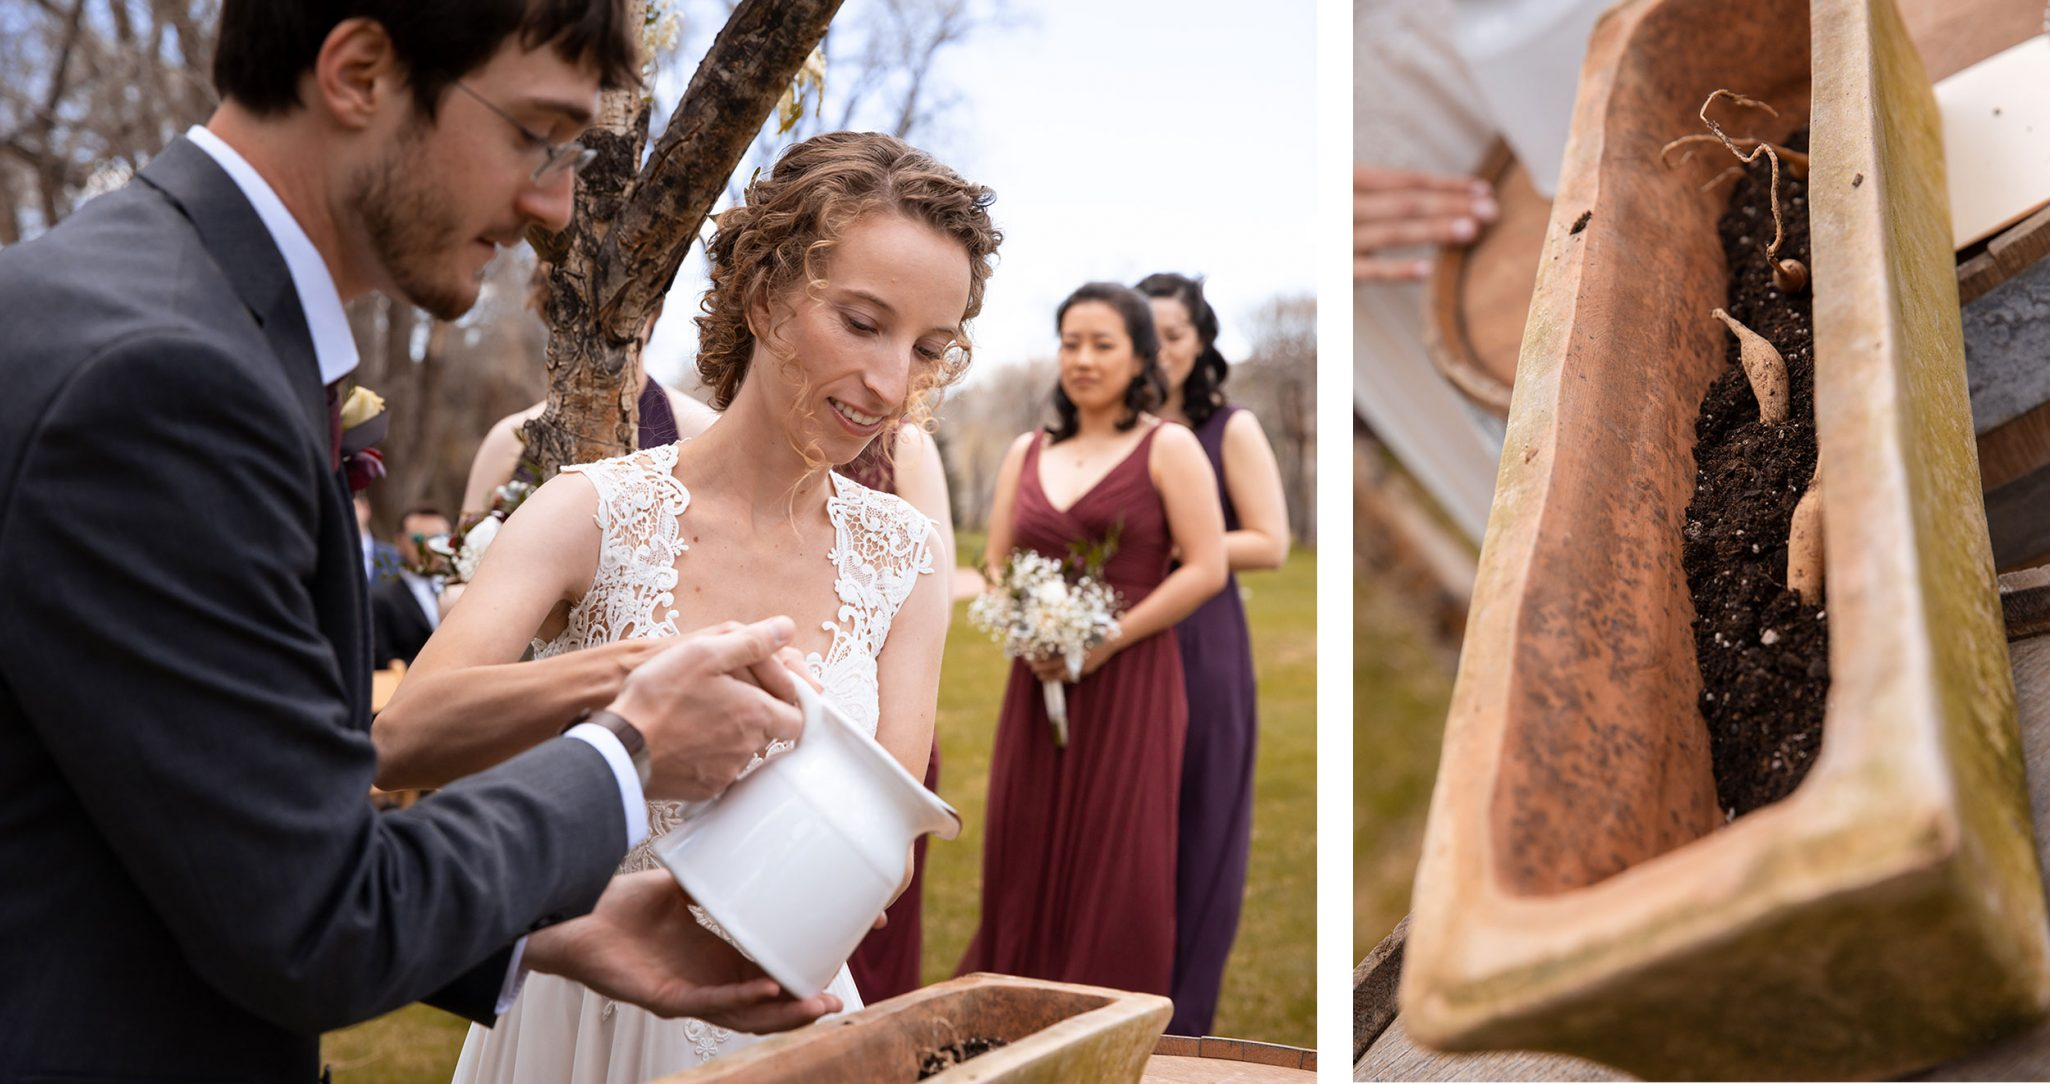 Planting bulbs during the ceremony